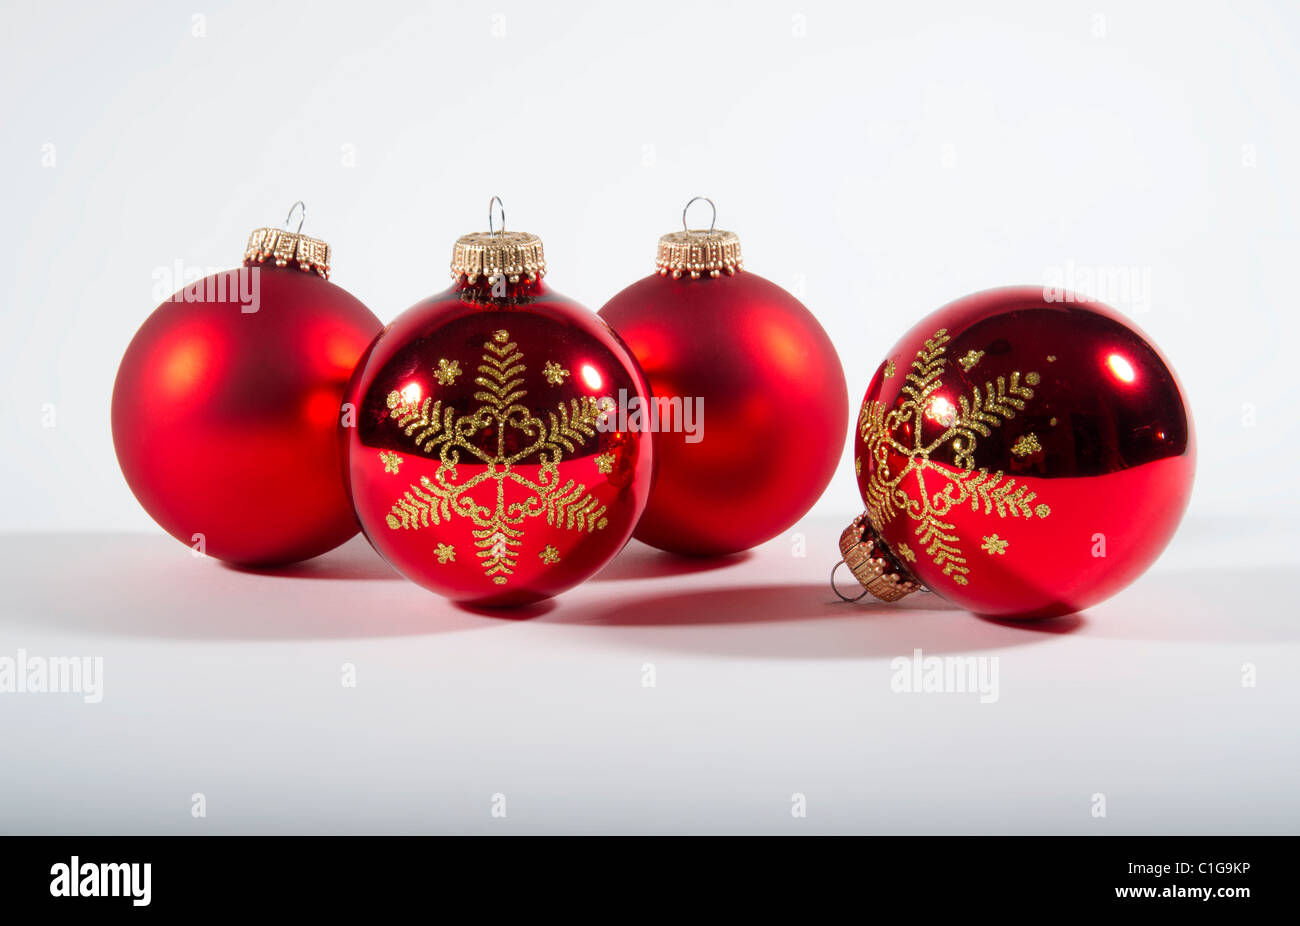 4 red Christmas tree baubles - Christmas decorations pair of satin and 2 shiny with gold snowflake paterns - Stock Image